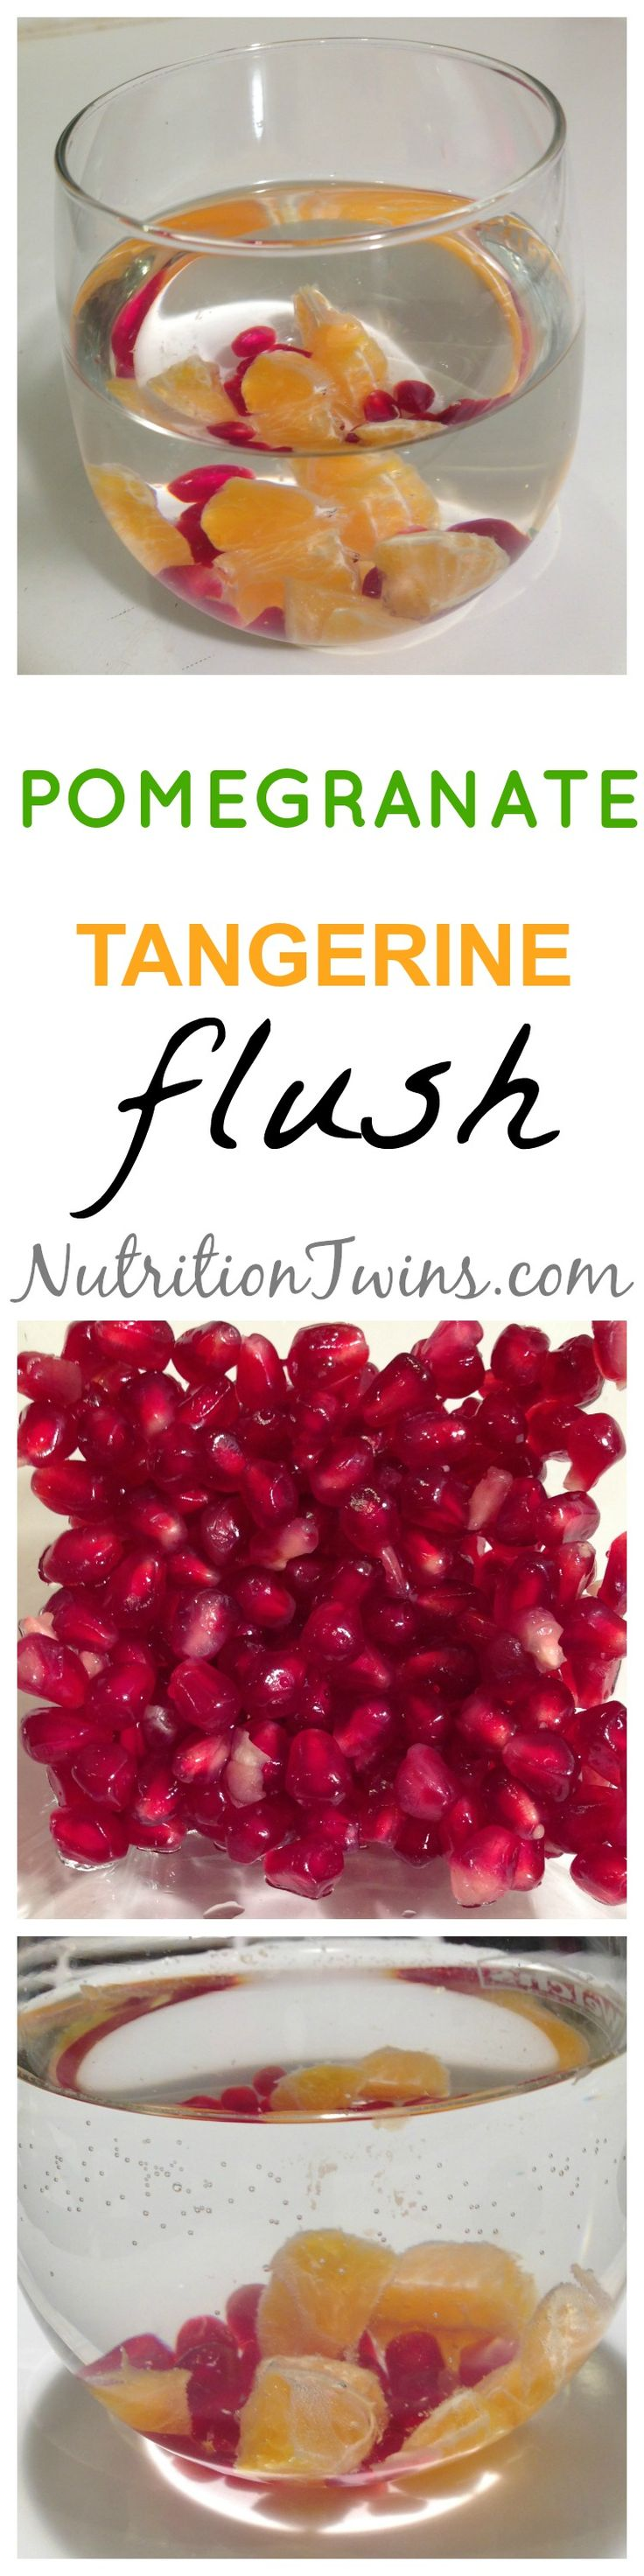 Pomegranate Tangerine Detox Flusher | Refreshing way to Flush Bloat & Restore Normal Fluid Balance | For MORE Nutrition & Fitness Tips & Recipes please SIGN UP for our FREE NEWSLETTER www.NutritionTwins.com